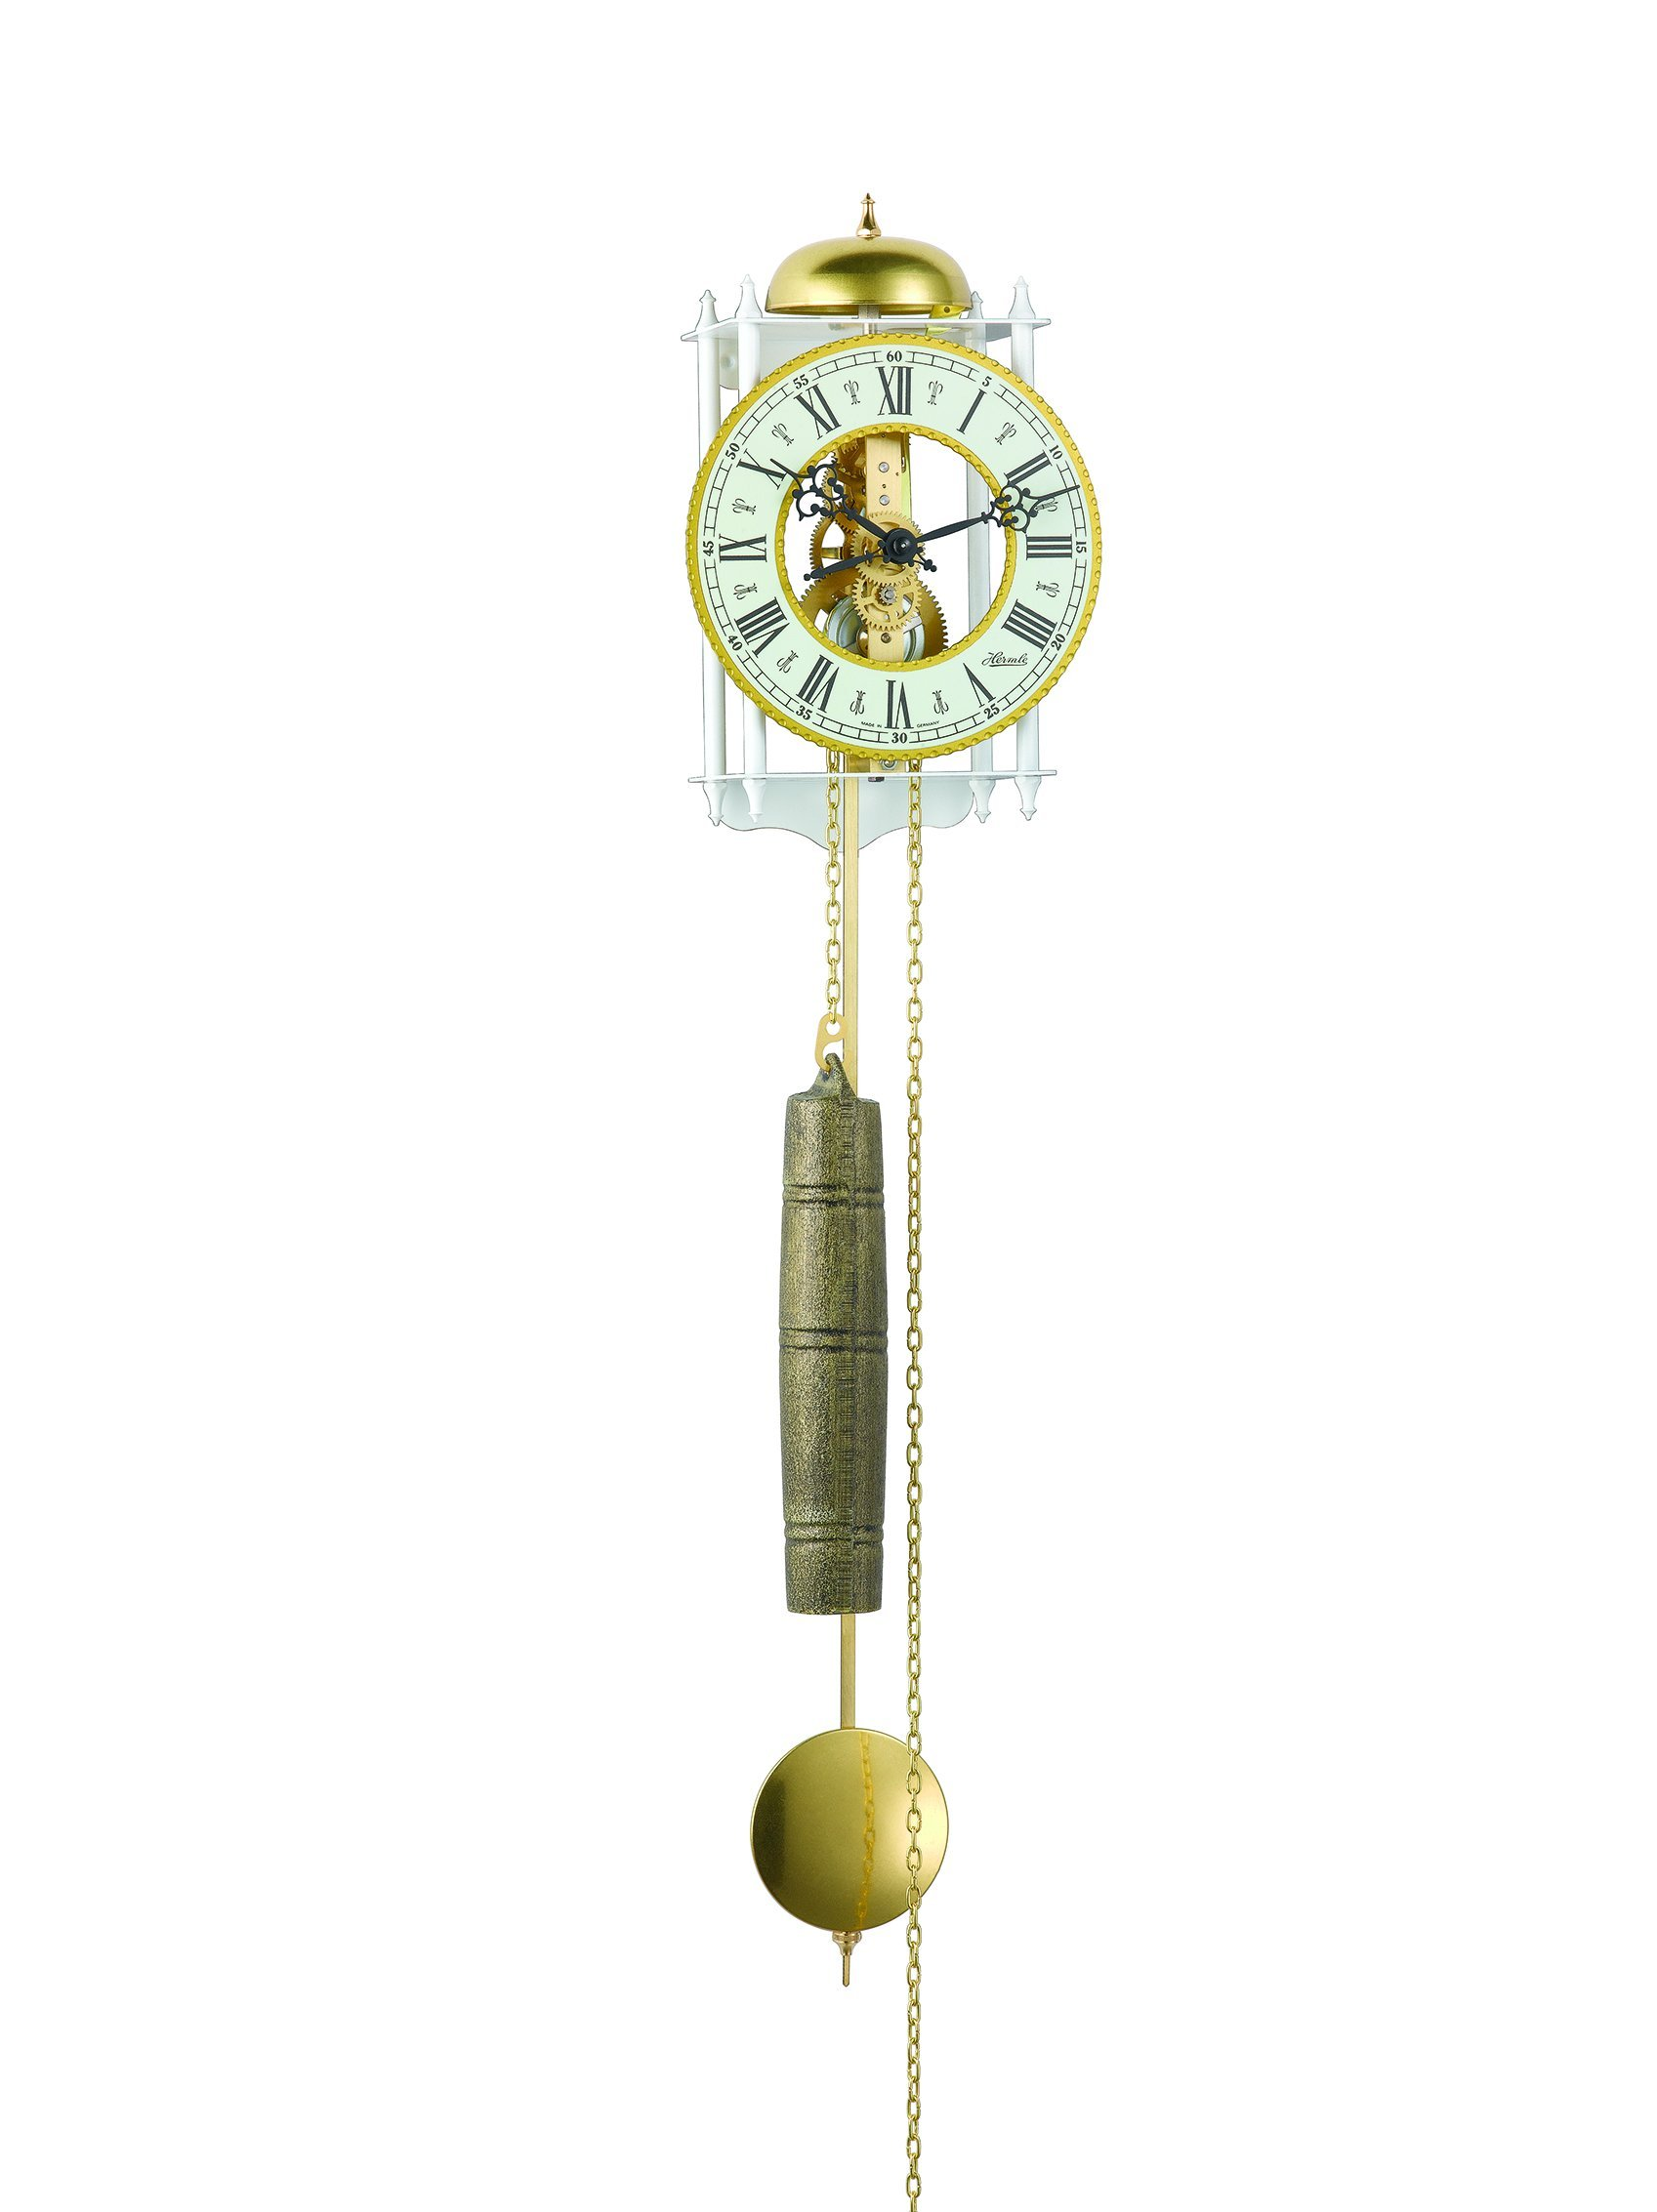 Hermle Pendulum Clocks 70733-000711